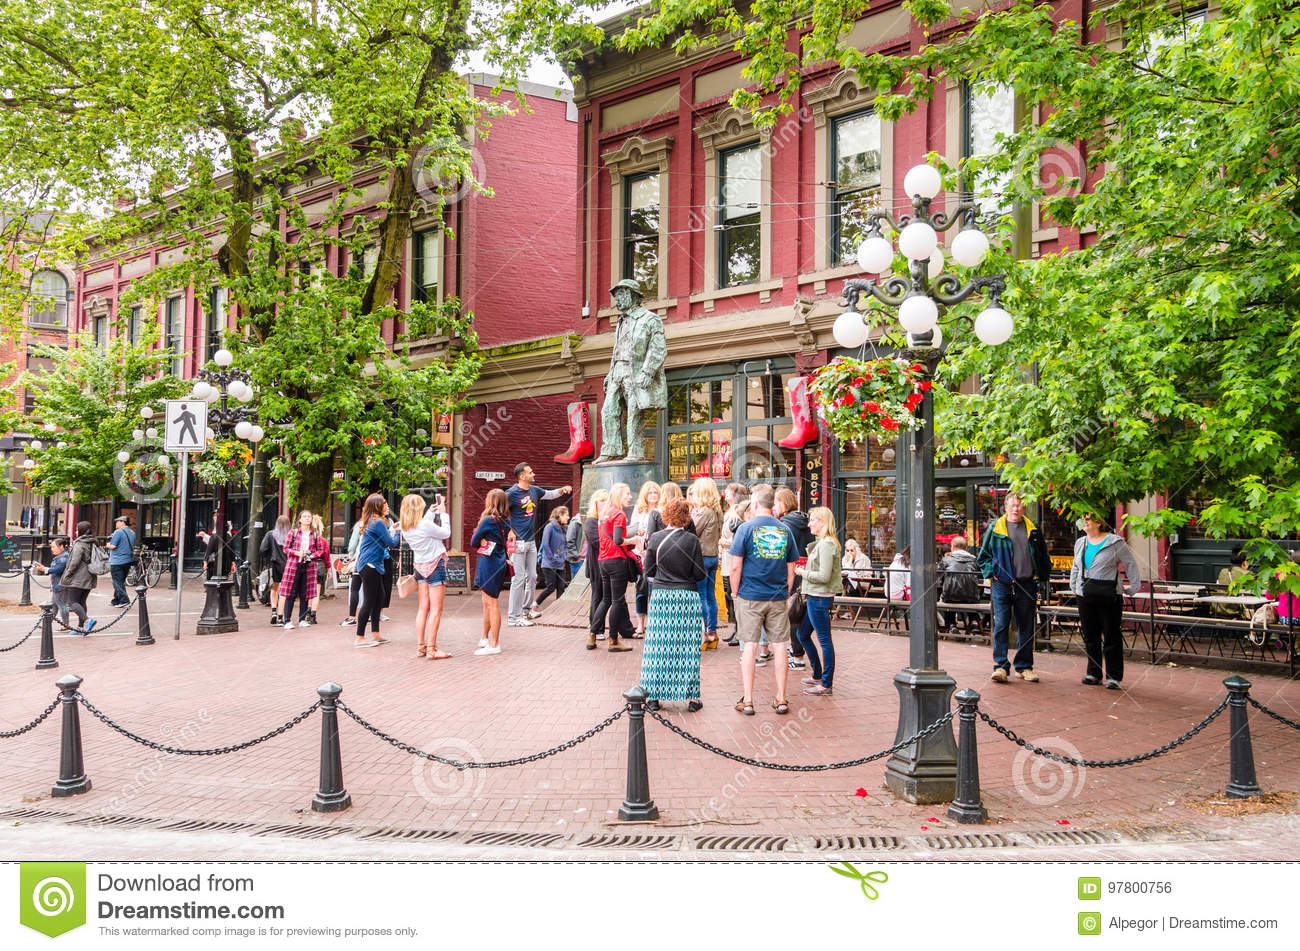 Tourists in Front of the Gassy Jack Statue in Gastown, Vancouver, Canada